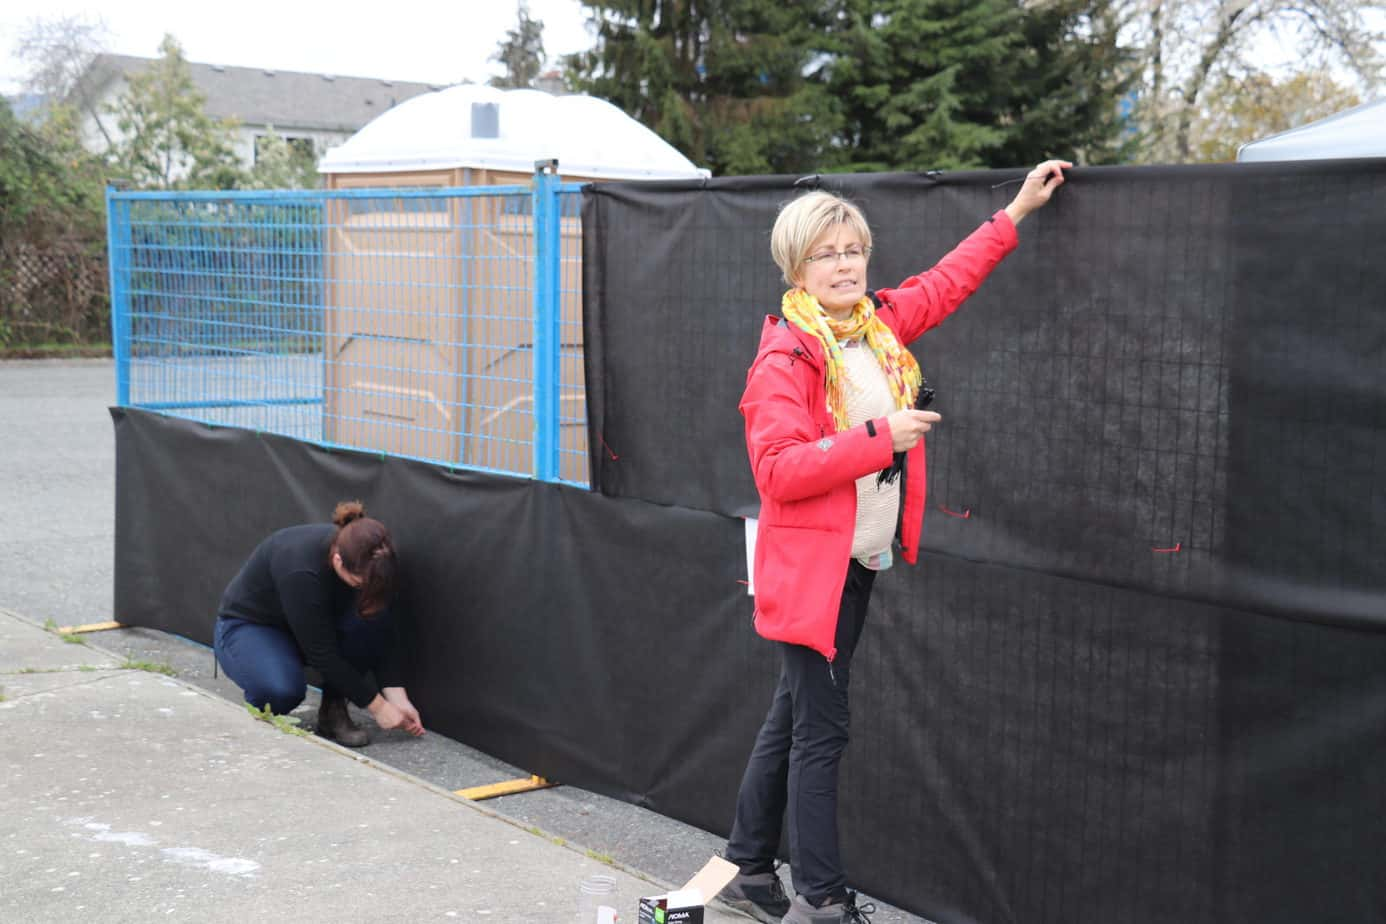 Debbie Berg CWAV installs privacy screens around the tenting site